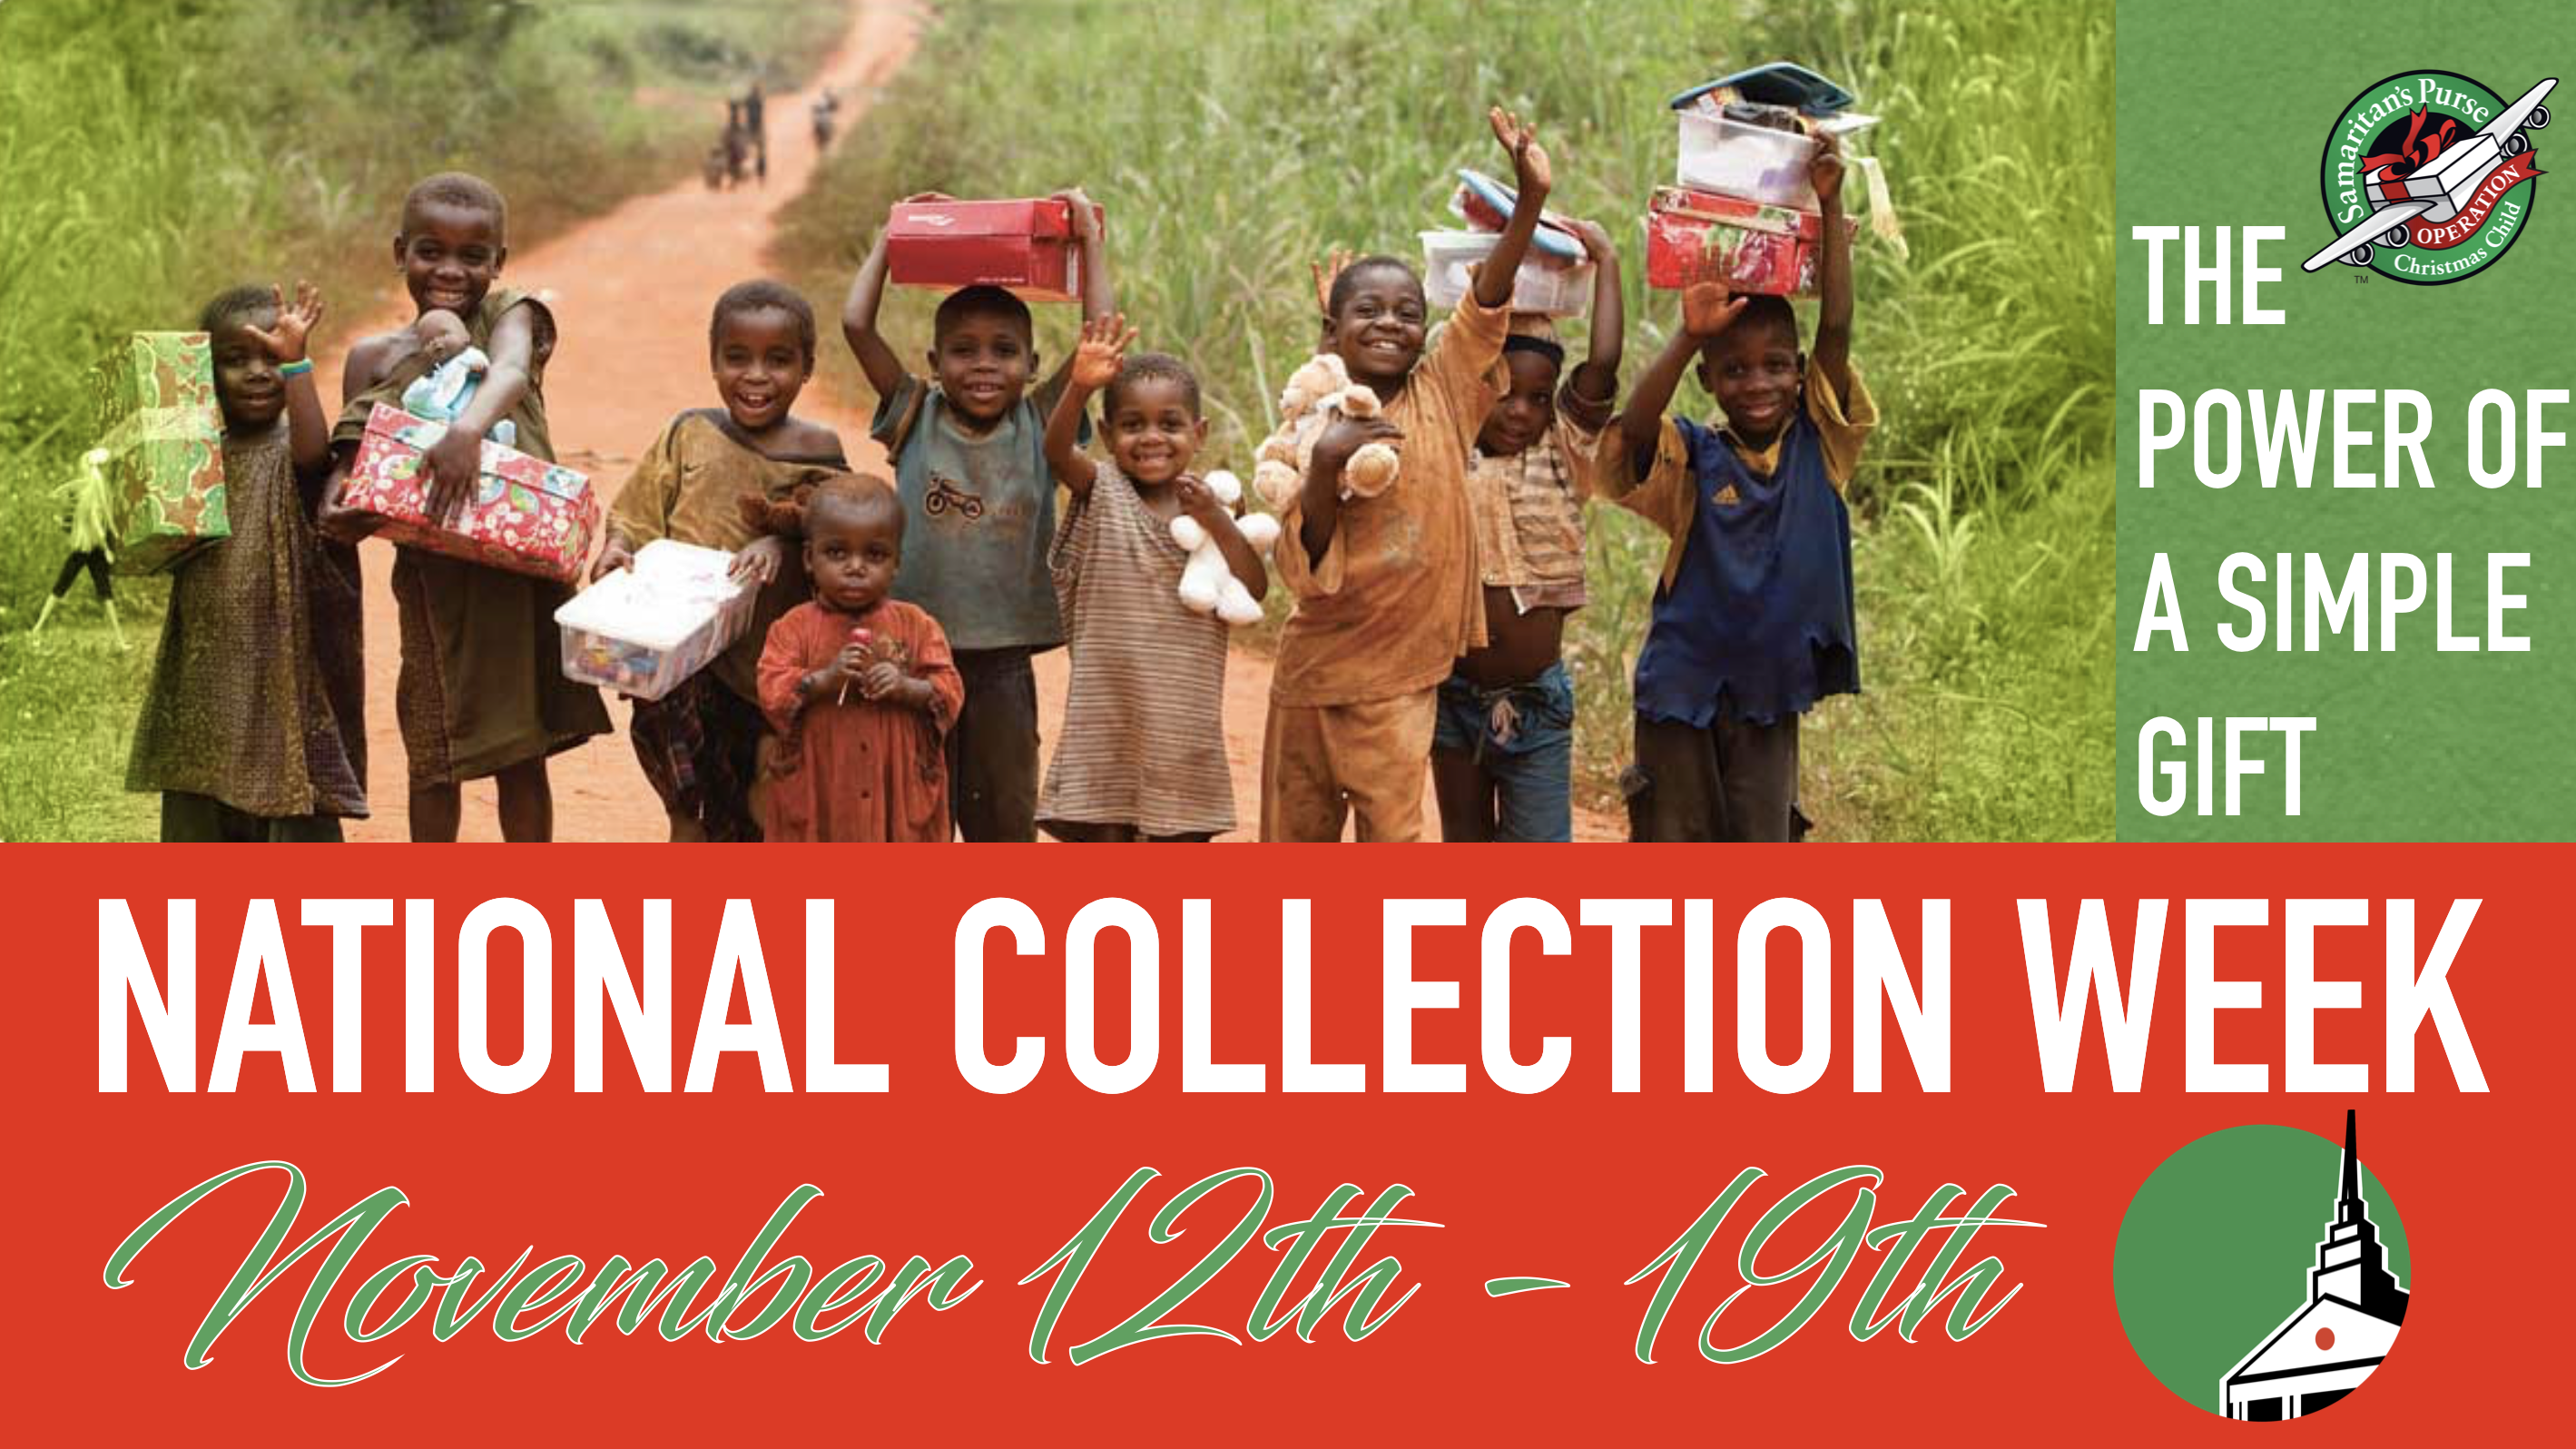 Operation Christmas Child Png.Operation Christmas Child Collection Week Fbc La Belle